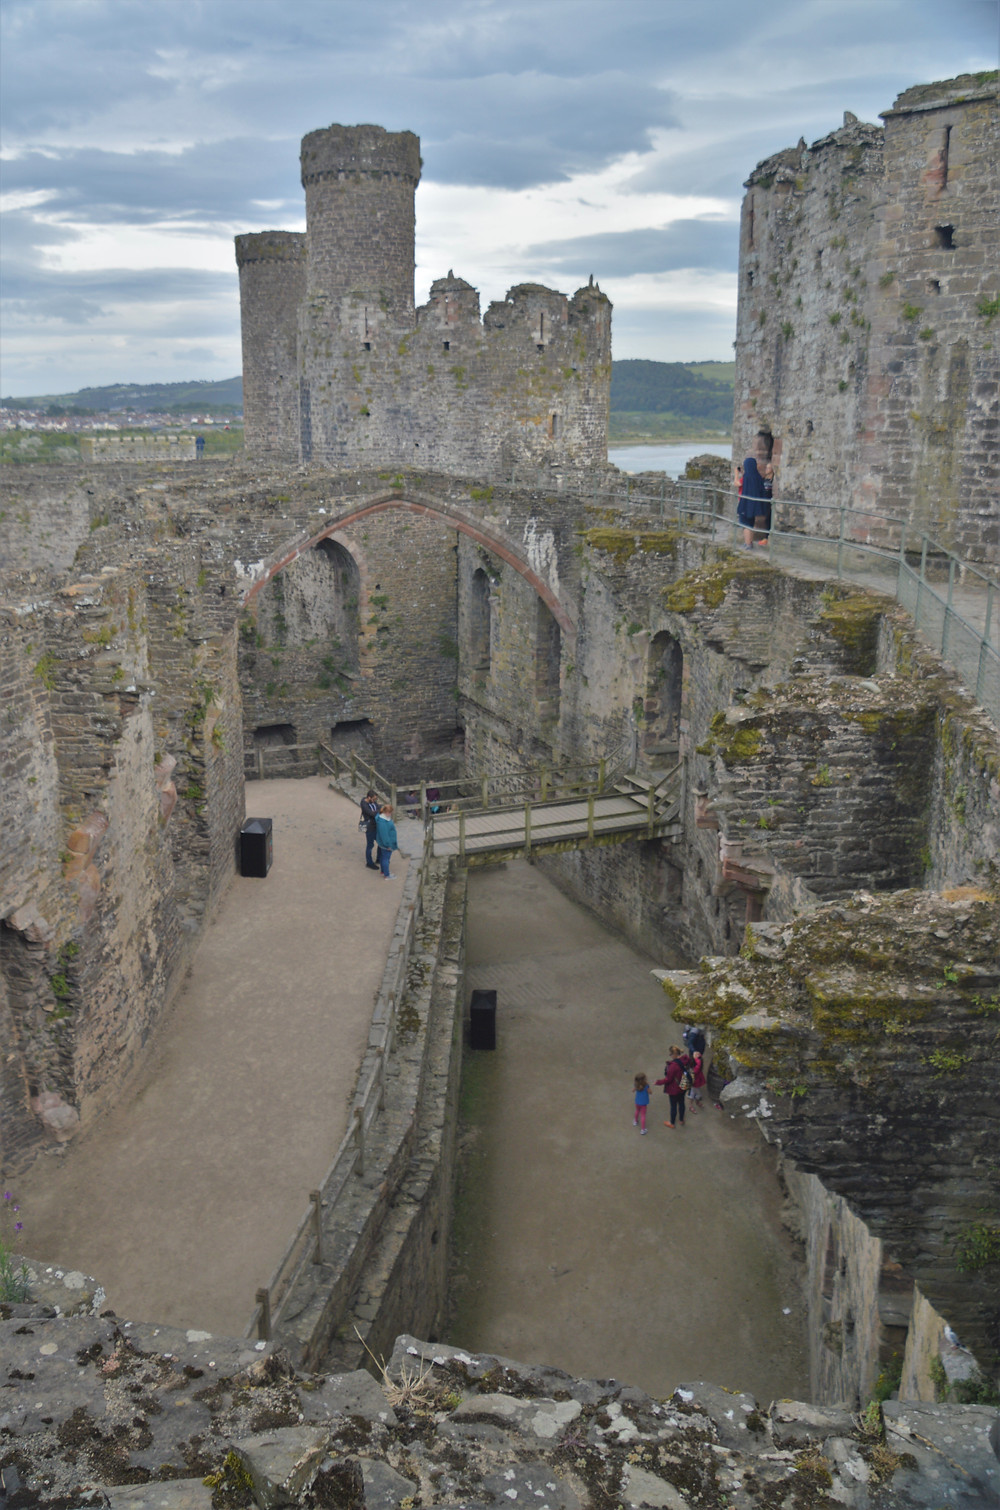 Looking into the Great Hall in the Inner Ward of Conwy Castle. Prison Tower of Conwy Castle in the center of the picture